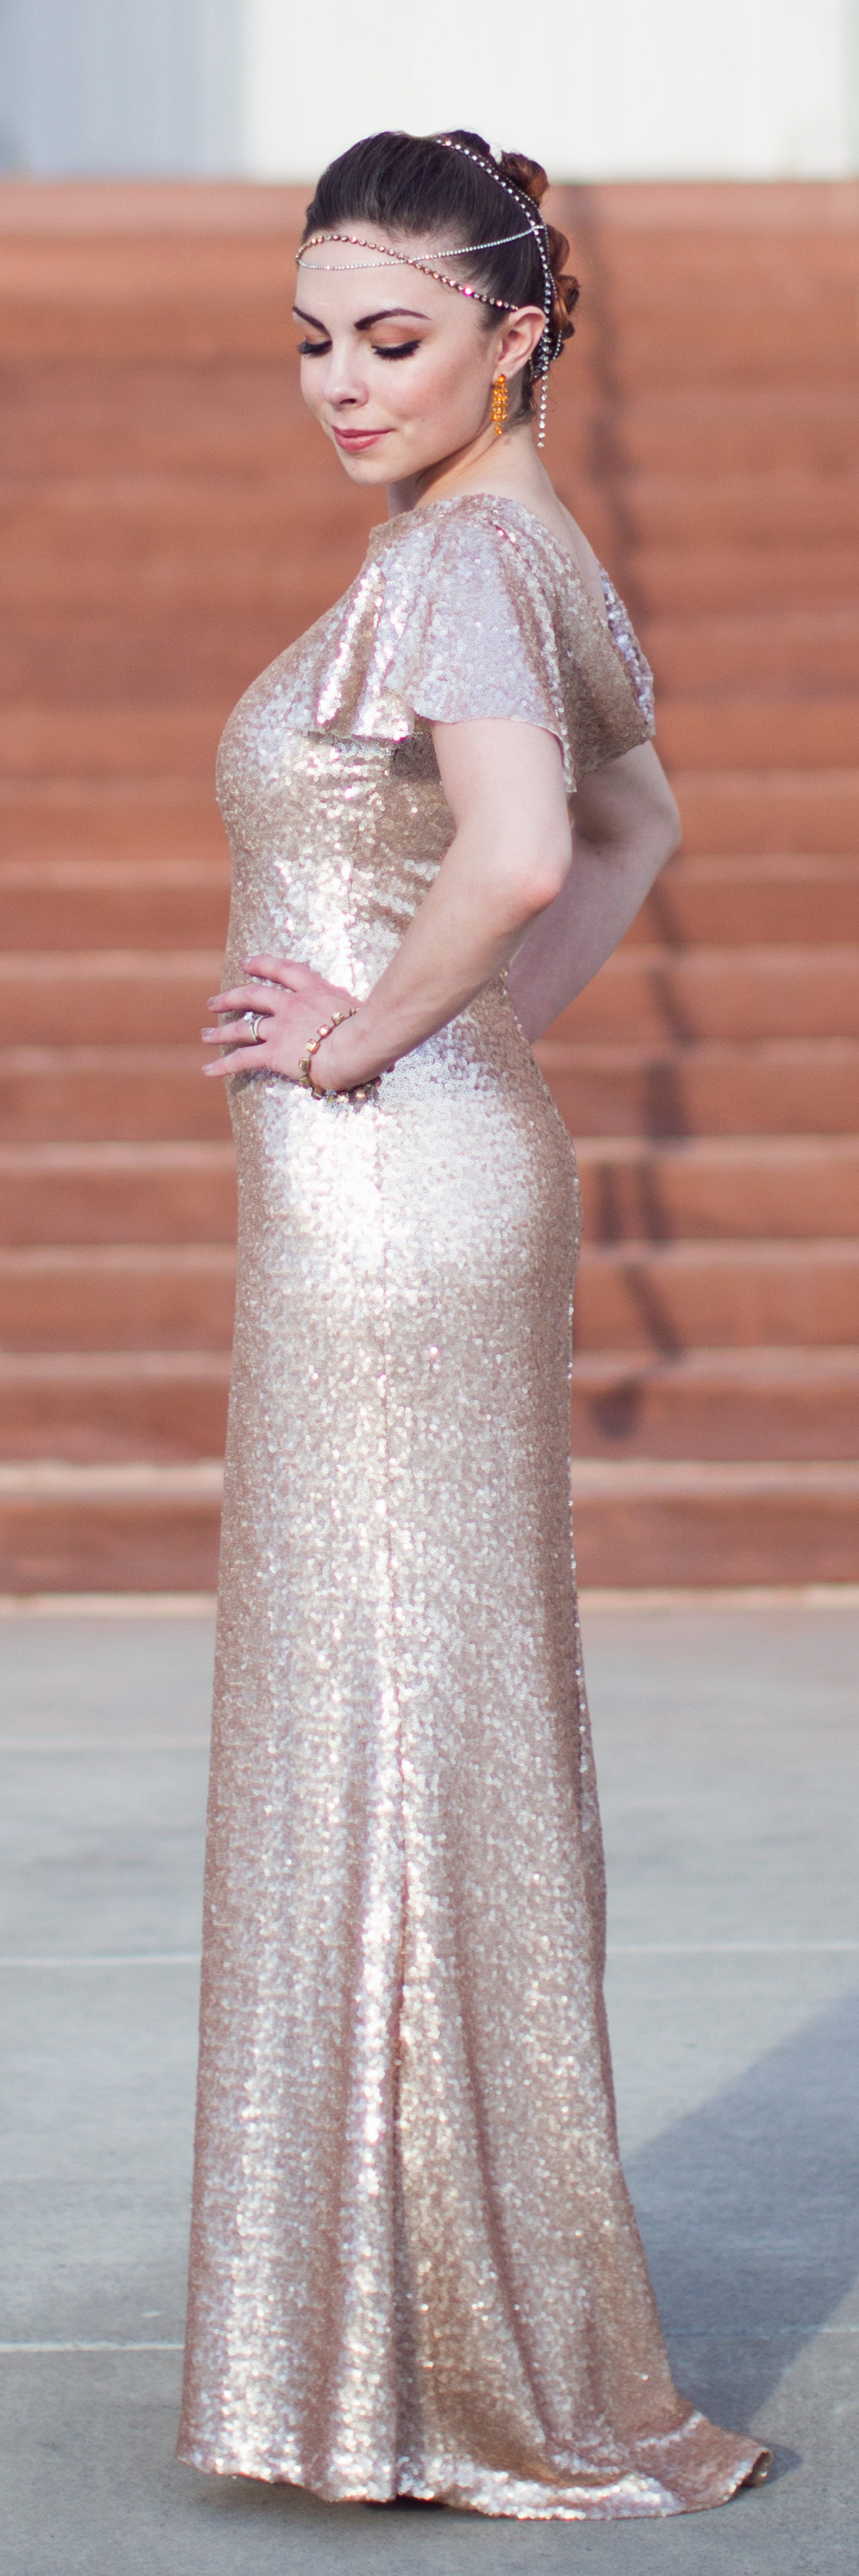 """Rose Gold Glam"" Modest Rose Gold Sequin Dress"